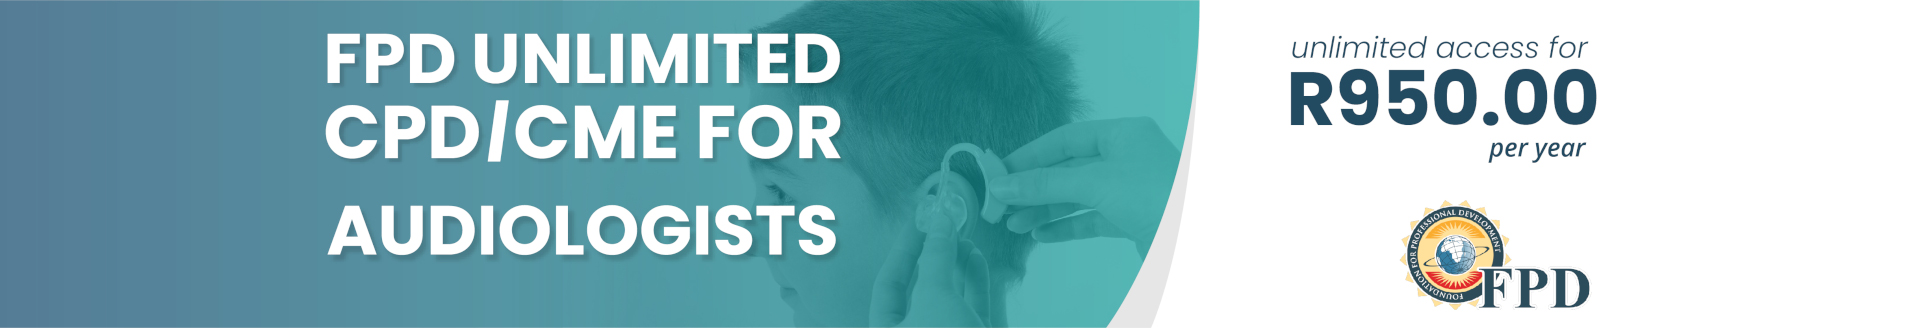 FPD Unlimited CPD for Audiologists